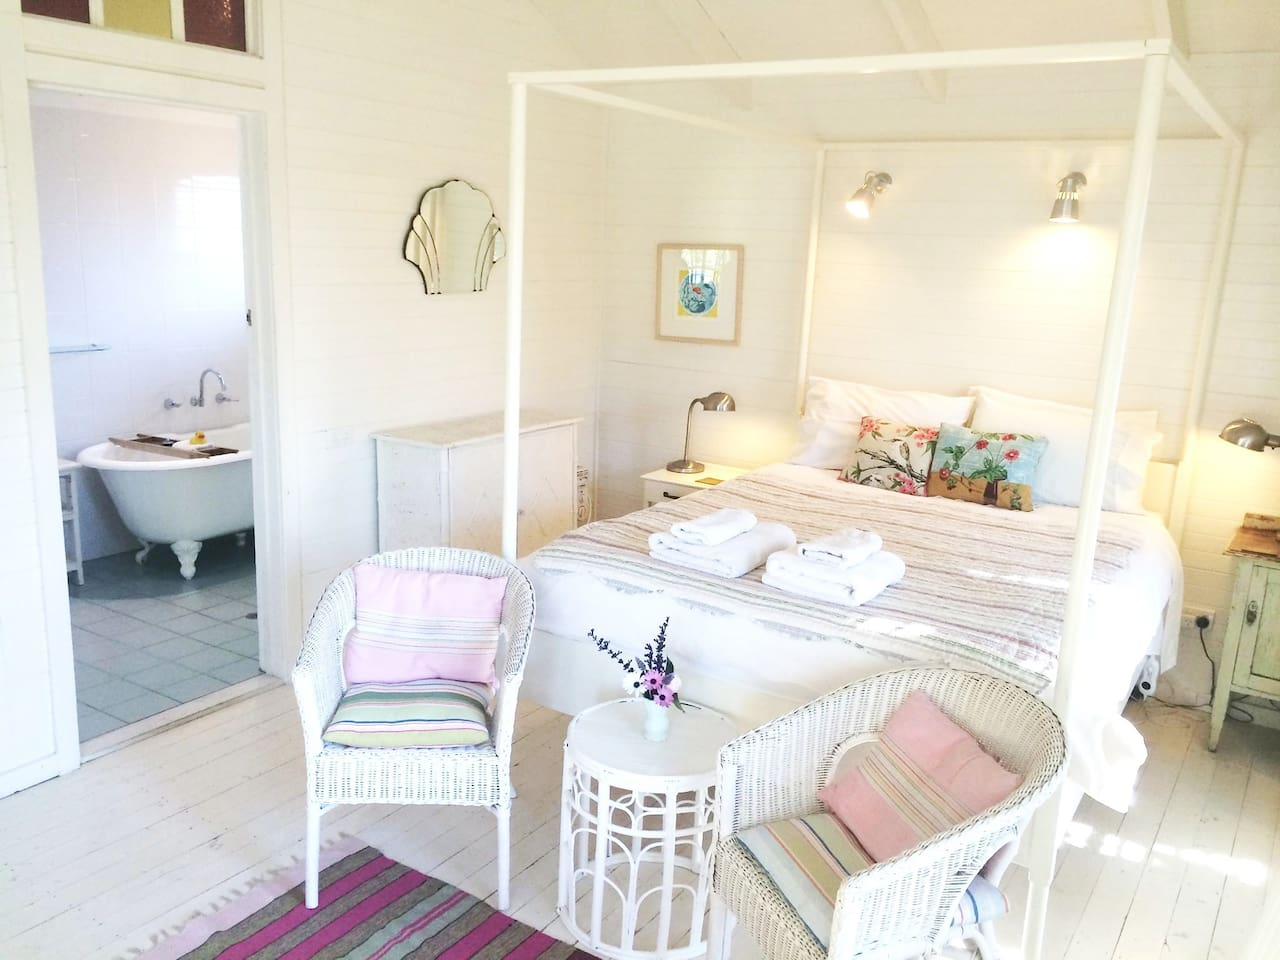 The Verandah Room is one of our most popular rooms @huskissonbnb